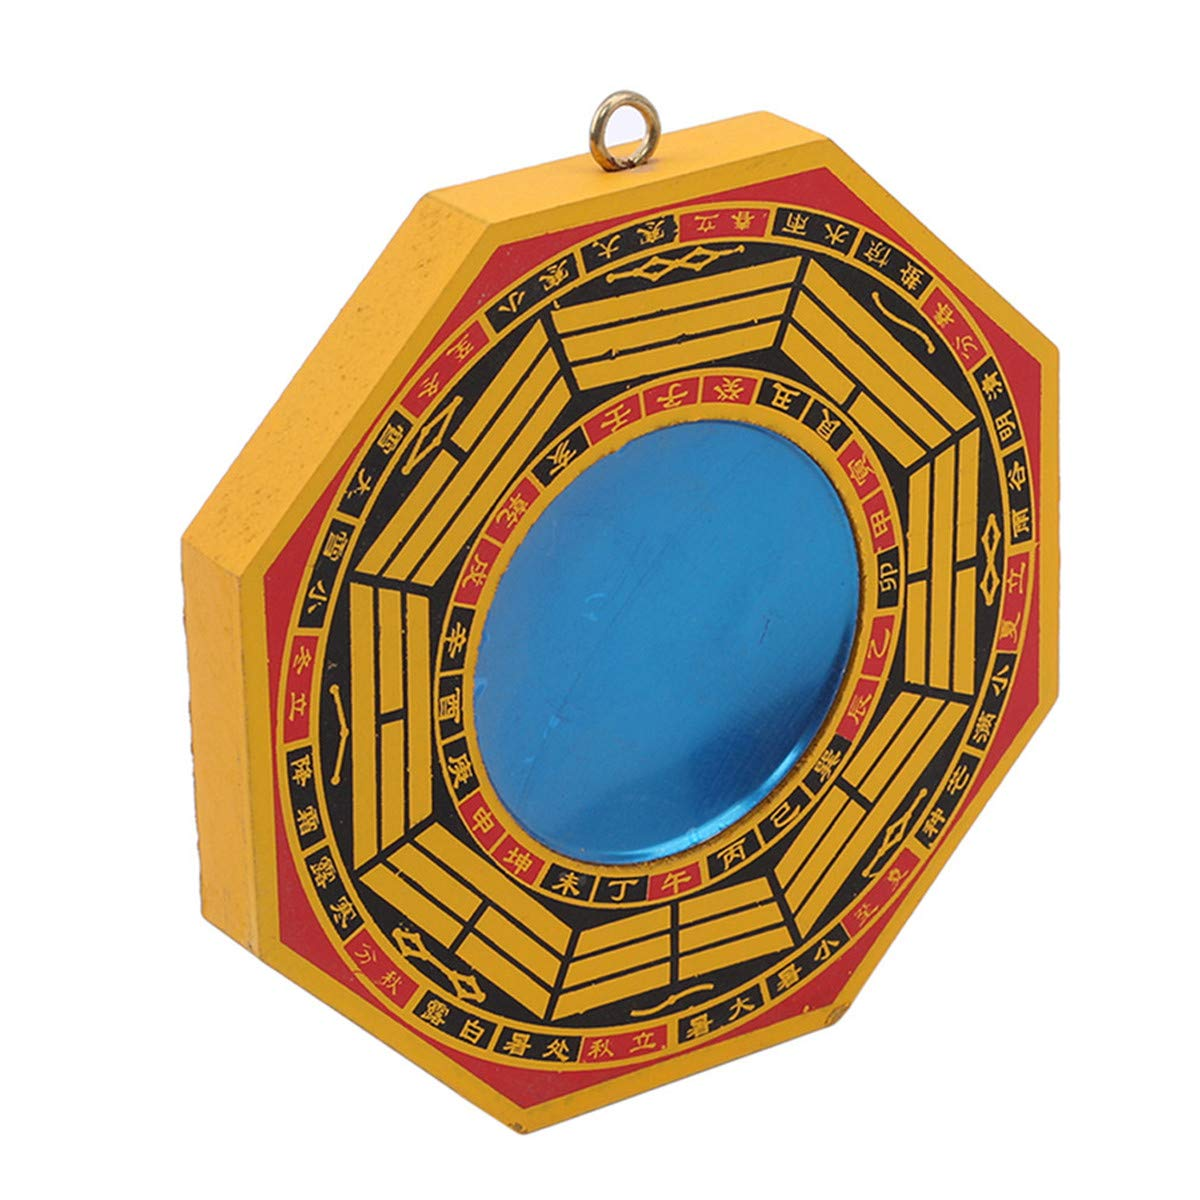 Beiswe Chinese Feng Shui Dent Convex Bagua FengShui Mirror Taoist Talisman Energy for Home Decoration Ornament